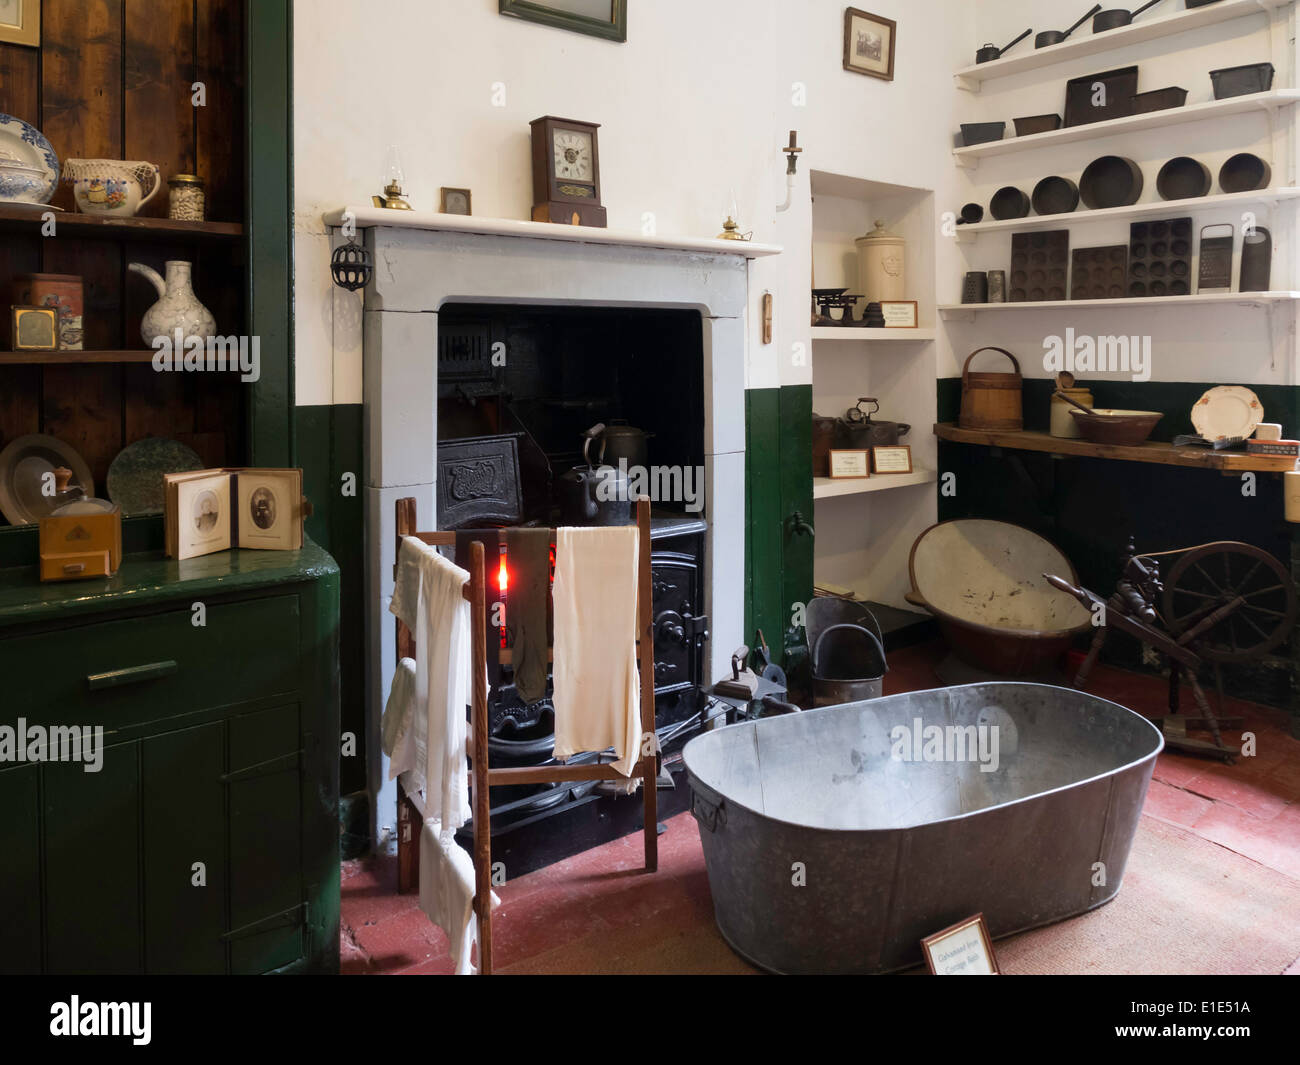 Exhibit Of Old Fashioned Kitchen At The Bygones Museum At Holkham Hall  Norfolk England UK With